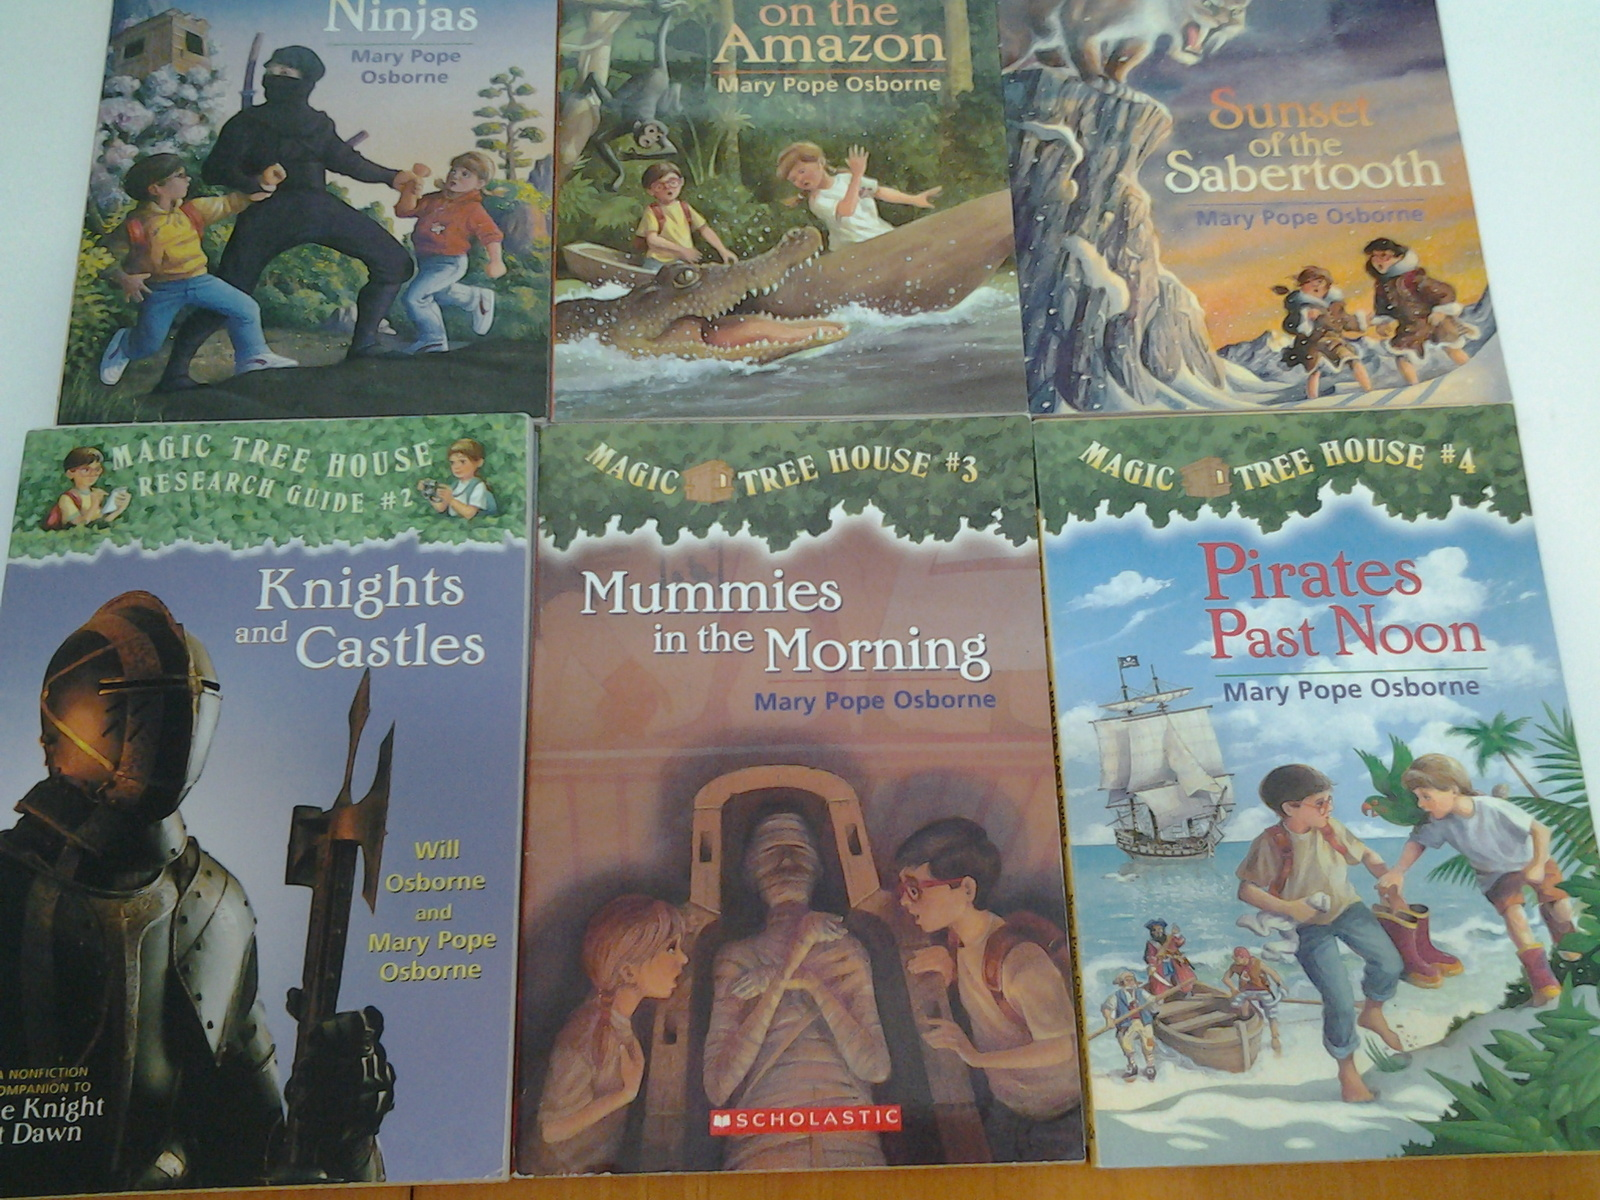 Lot of 13 Magic Tree House Paperback Books 1-4, 6-10, 13, 14, 17, 18 Series Set